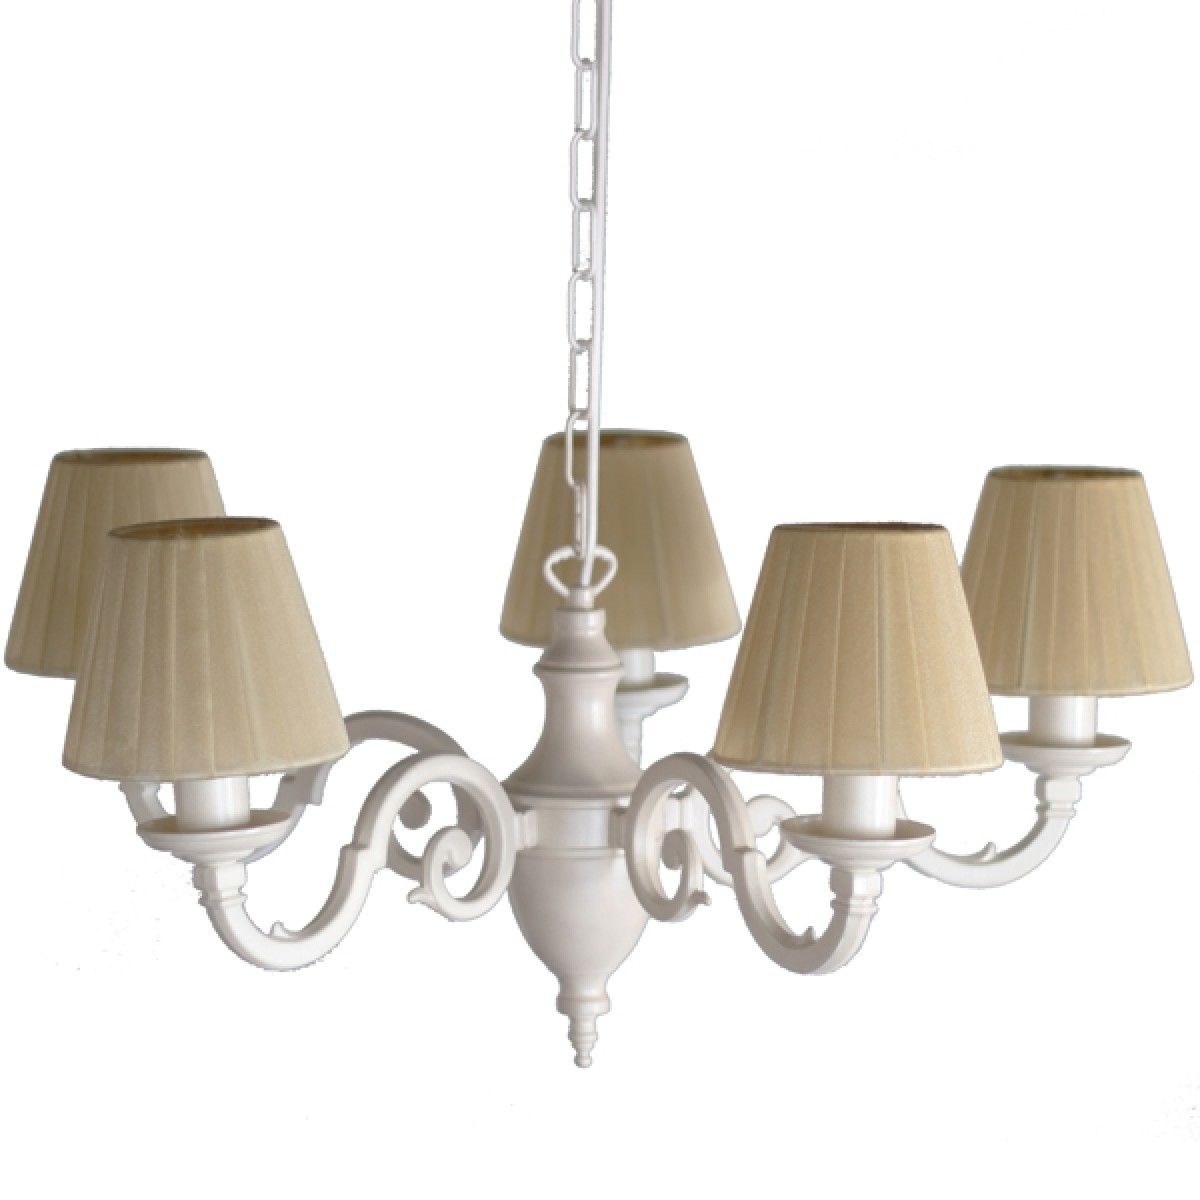 Most Current Light Fitting Chandeliers Pertaining To Bedroom Light Fitting Chandelier (View 12 of 20)